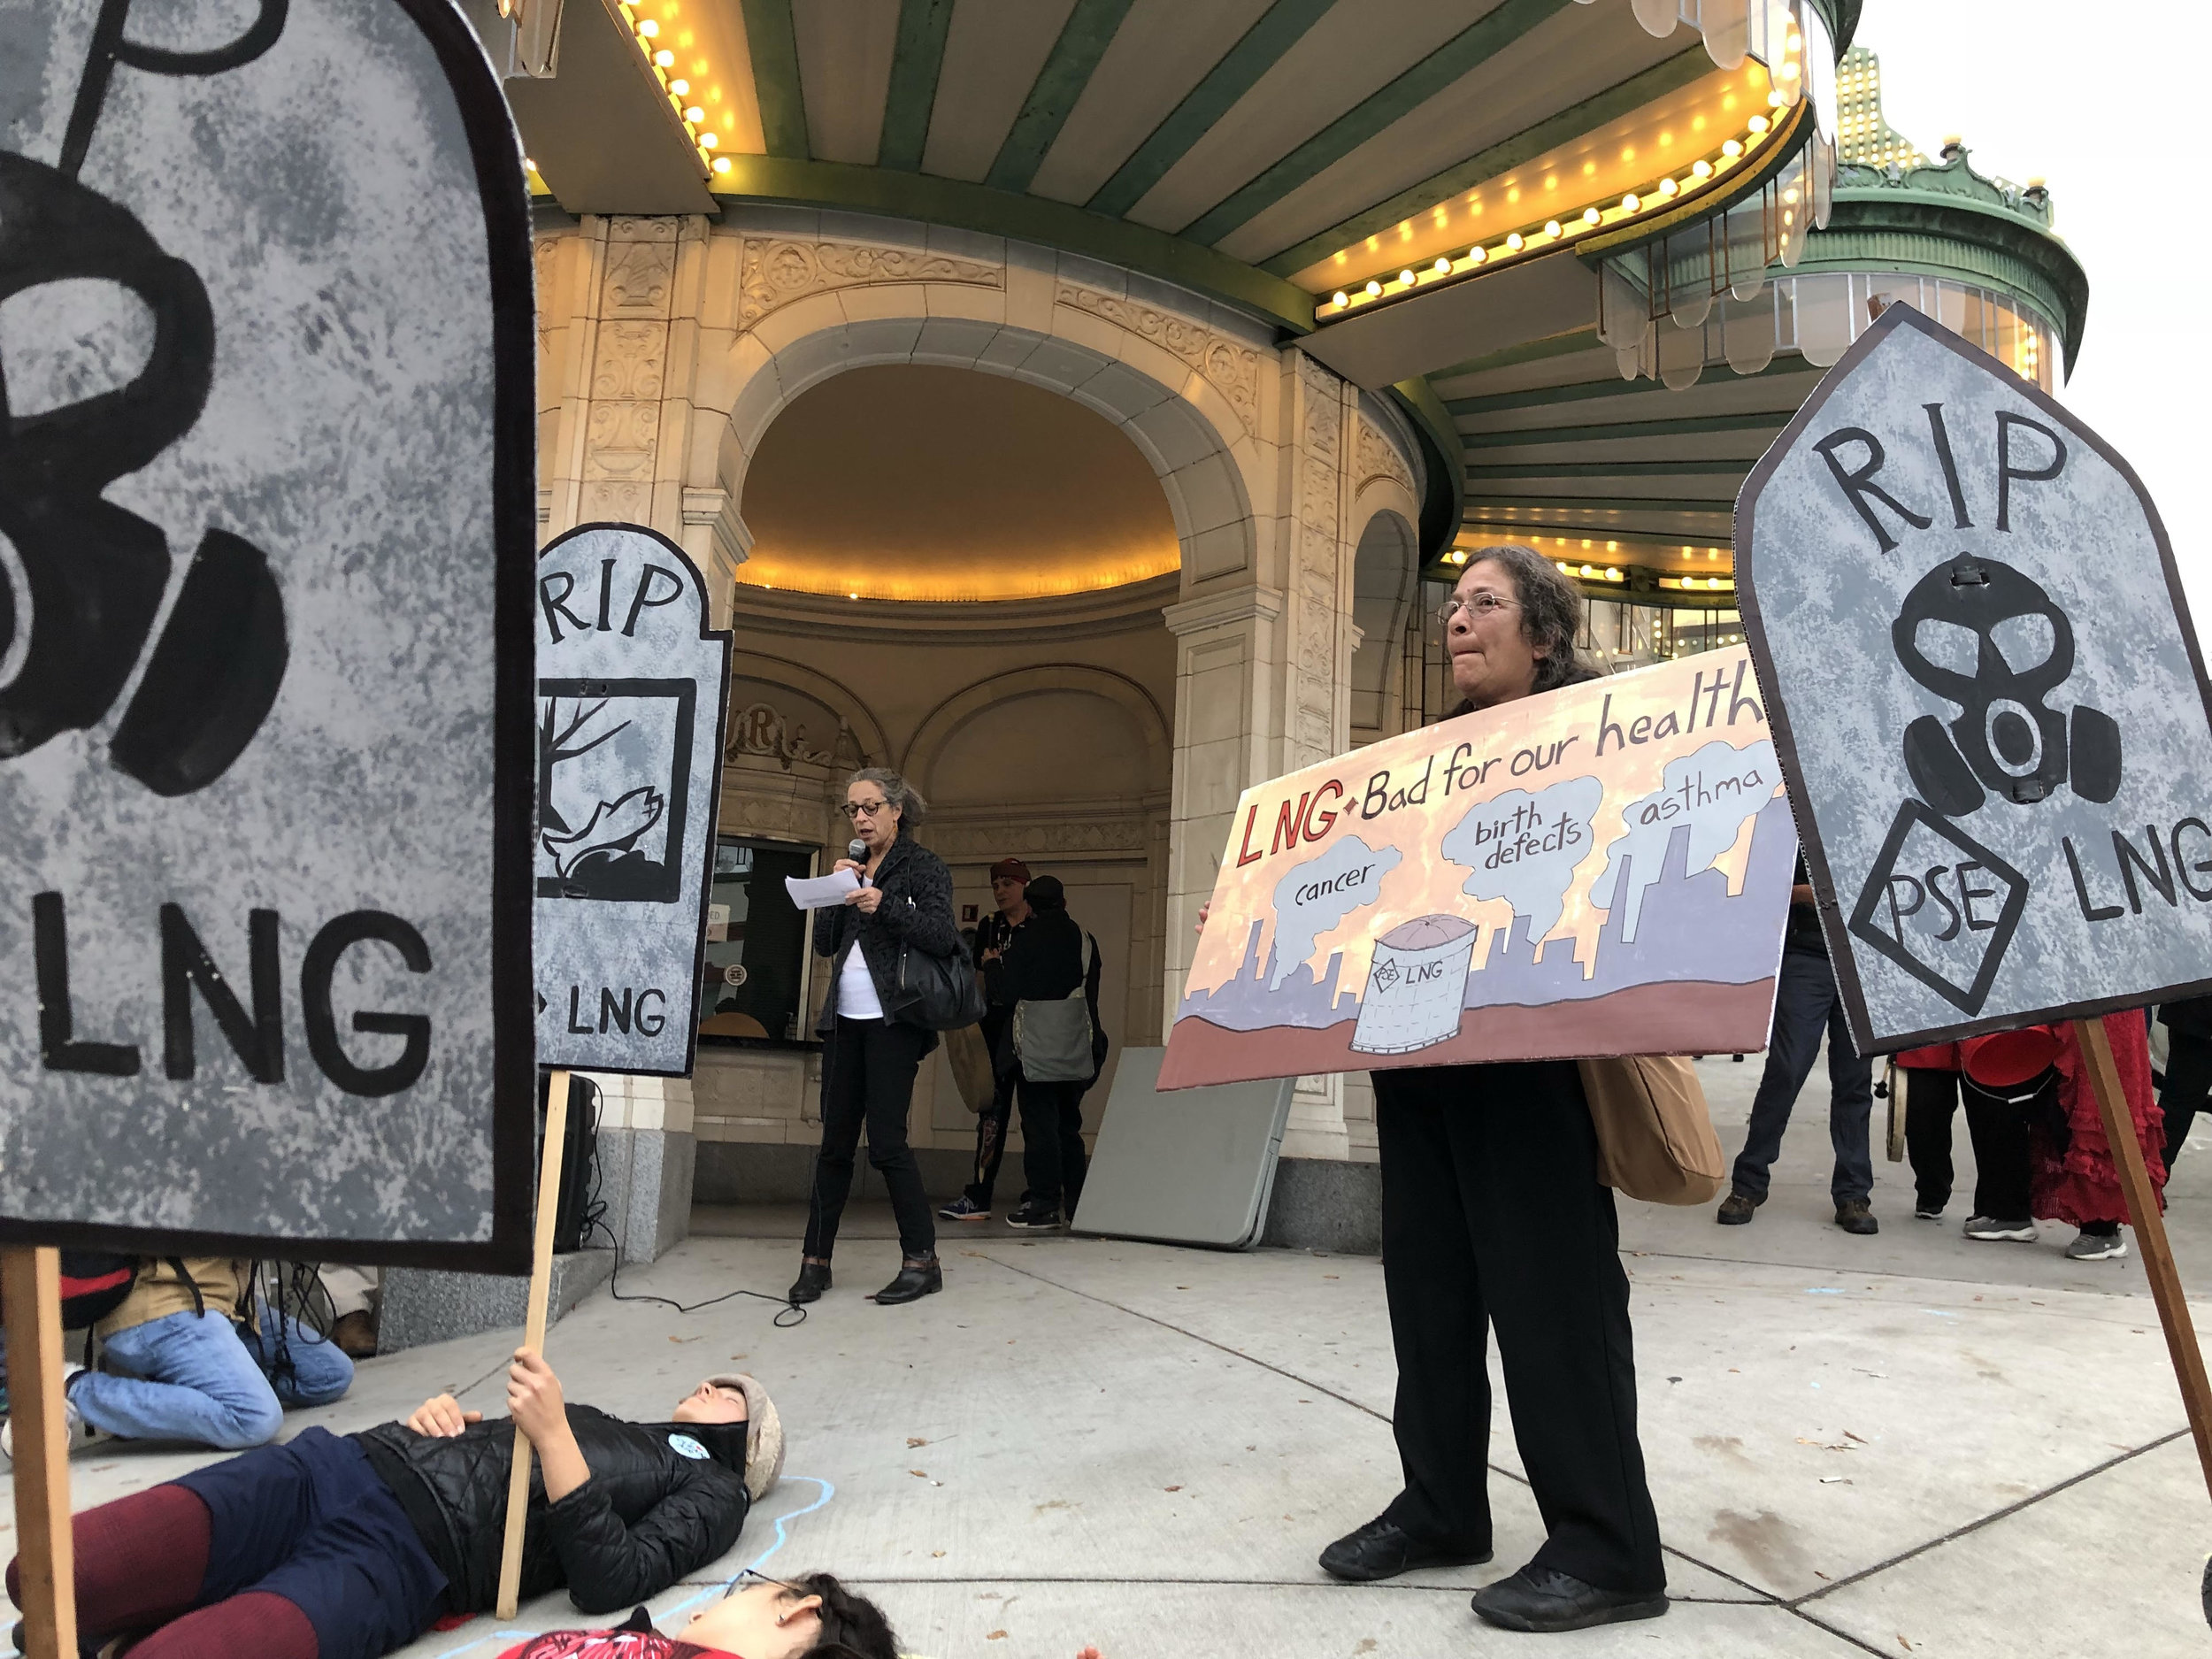 Take Action: Call for complete assesment of Tacoma LNG project - Dr. Lisa Johnson speaks at a rally at the LNG project hearing on October 30th.